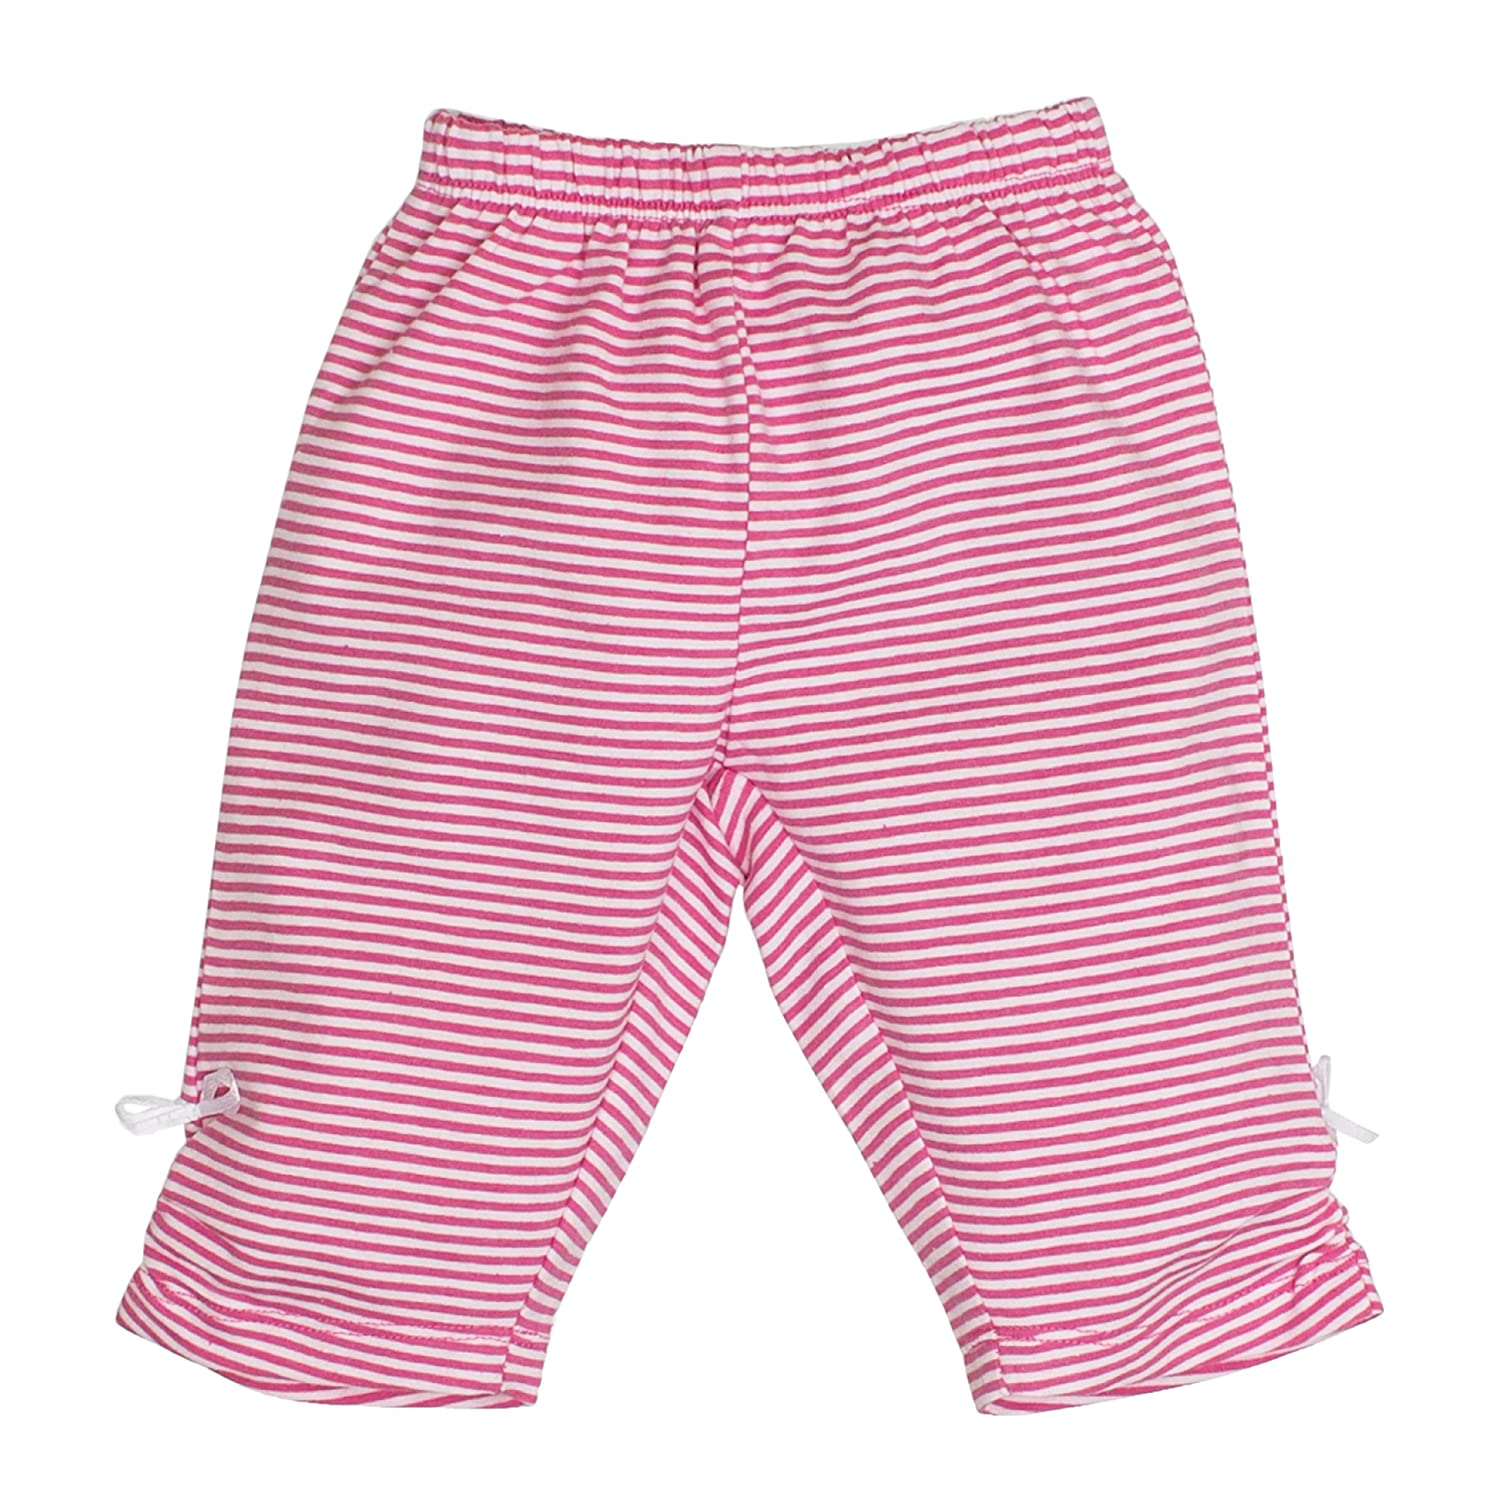 Salt & Pepper B Capri Beach Stripe, Bañador para Bebés SALT AND PEPPER 73214214